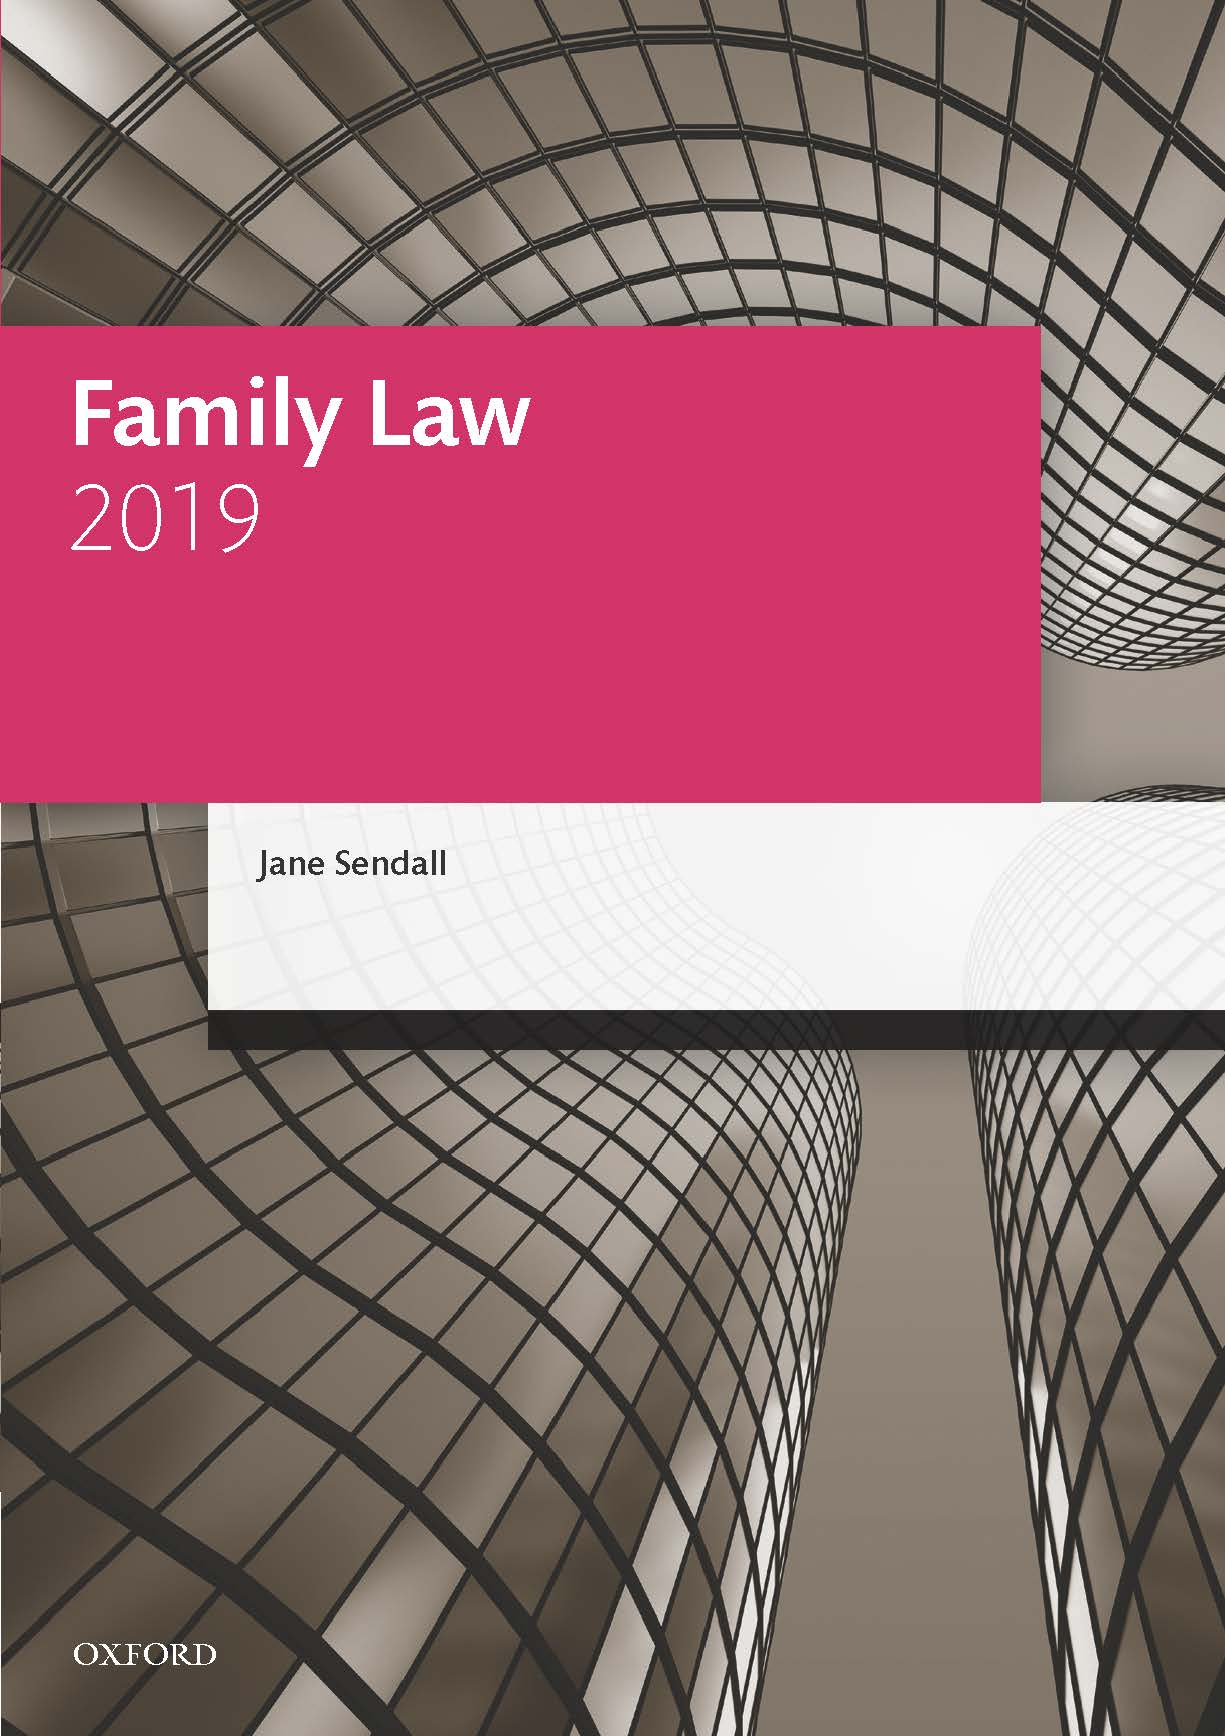 Family Law 2019 Resources